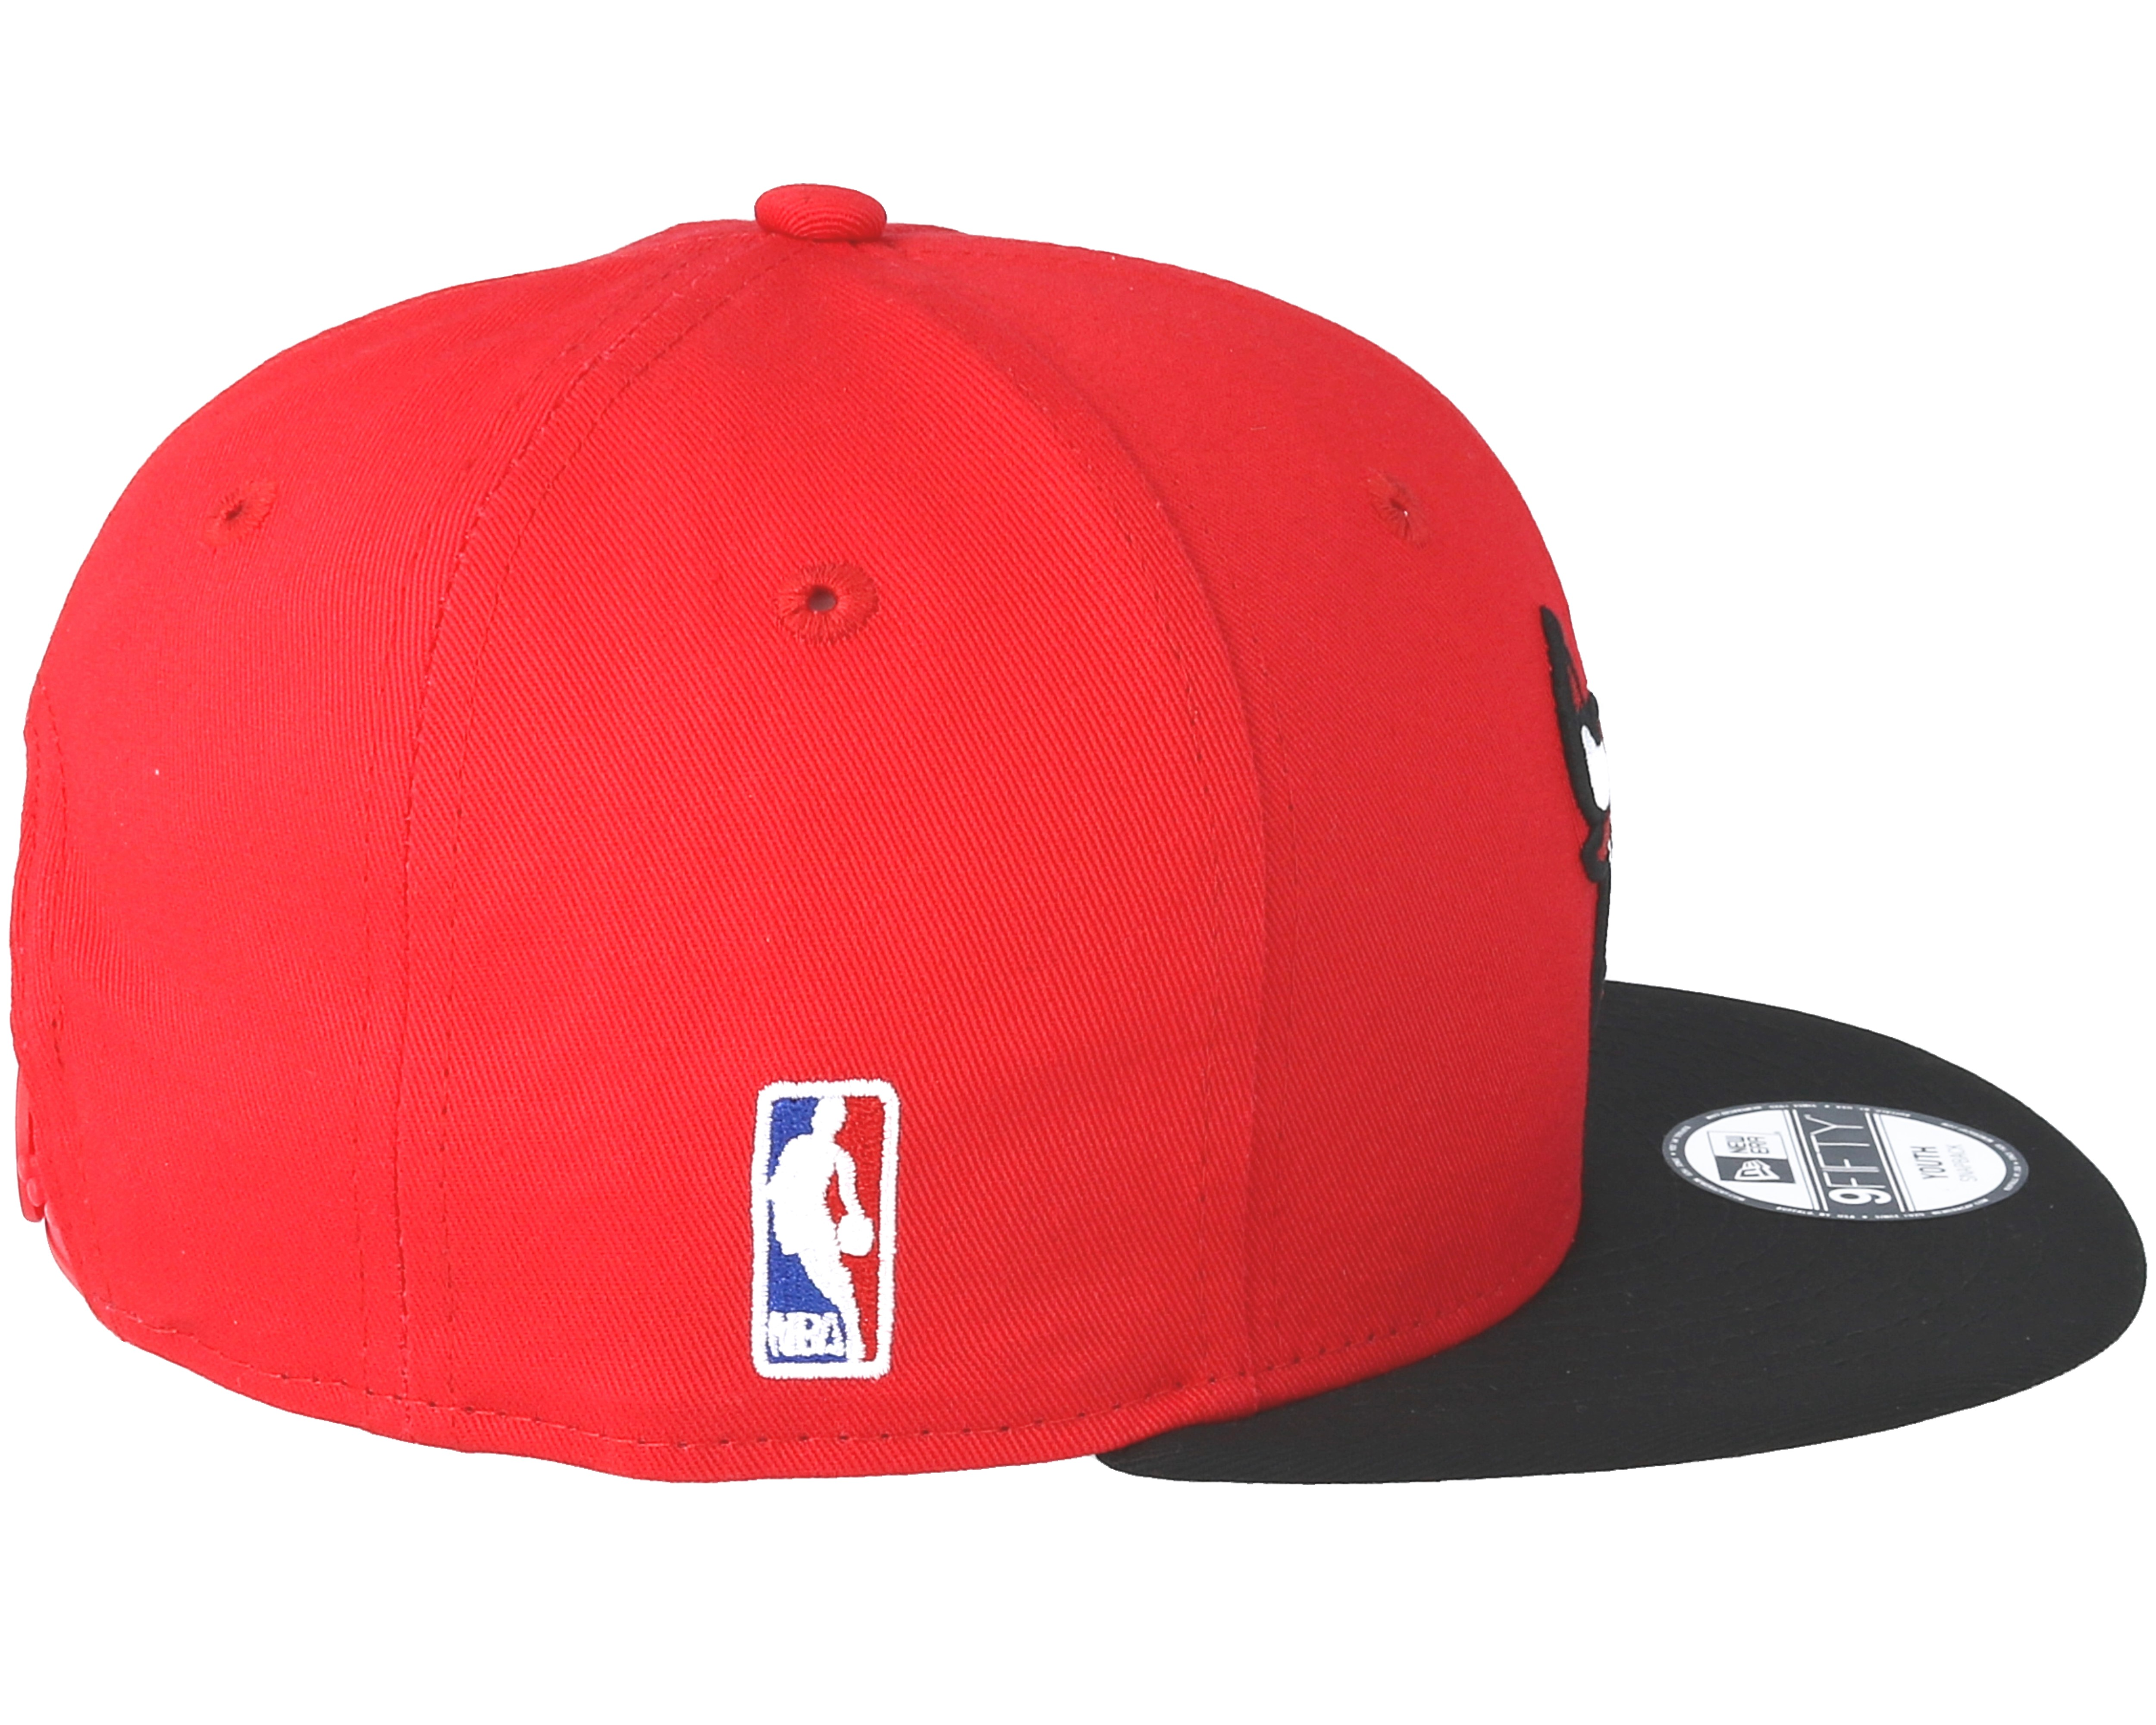 Kids Chicago Bulls Essential 9Fifty Red Snapback - New Era caps | Hatstore.co.uk